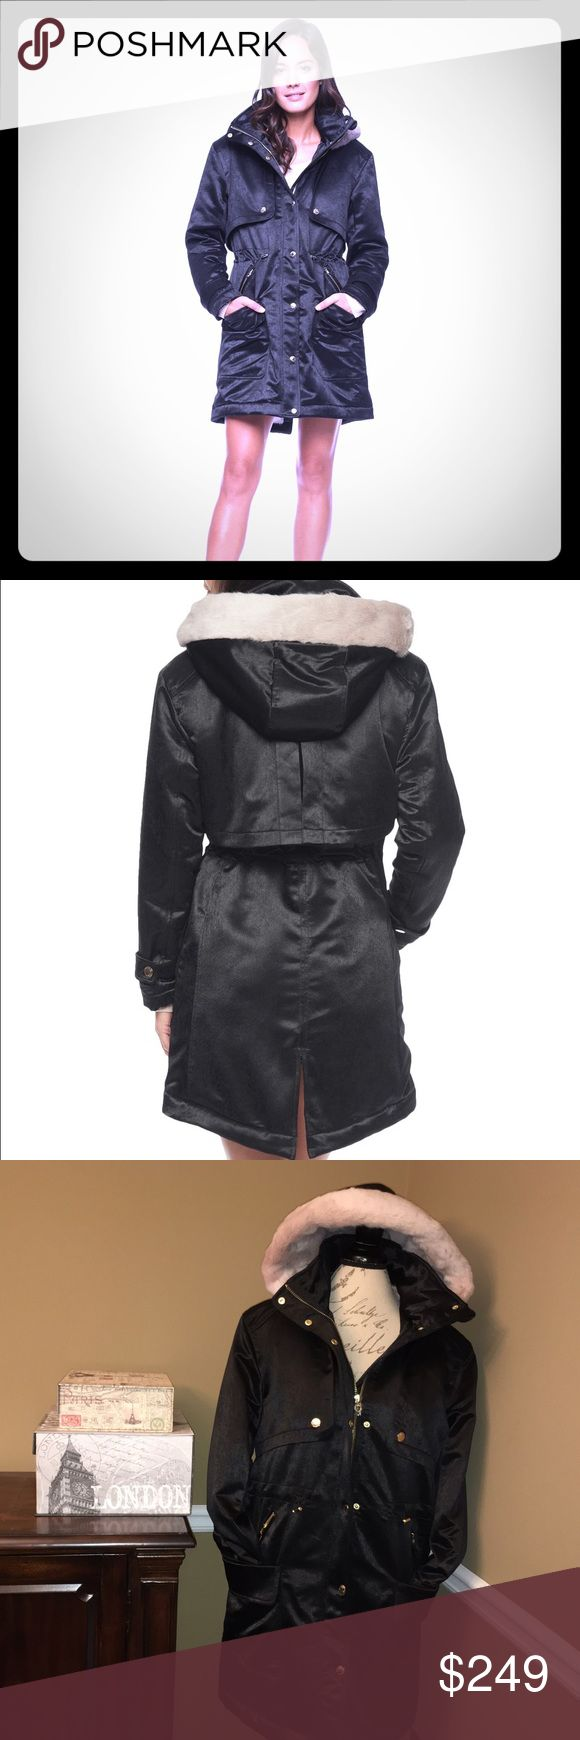 Juicy Couture Black Lux Faux Fur Parka-Large Juicy Couture Black Lux Faux Fur Parka-Large  Brand new with tags!! ☺️ Heavy and very warm. Lined with pink faux fur. This parka has two large open pockets and two zipper pockets. Measures 35 inches from shoulder to hem. Perfect for the upcoming holidays. ☺️🎁 Juicy Couture Jackets & Coats